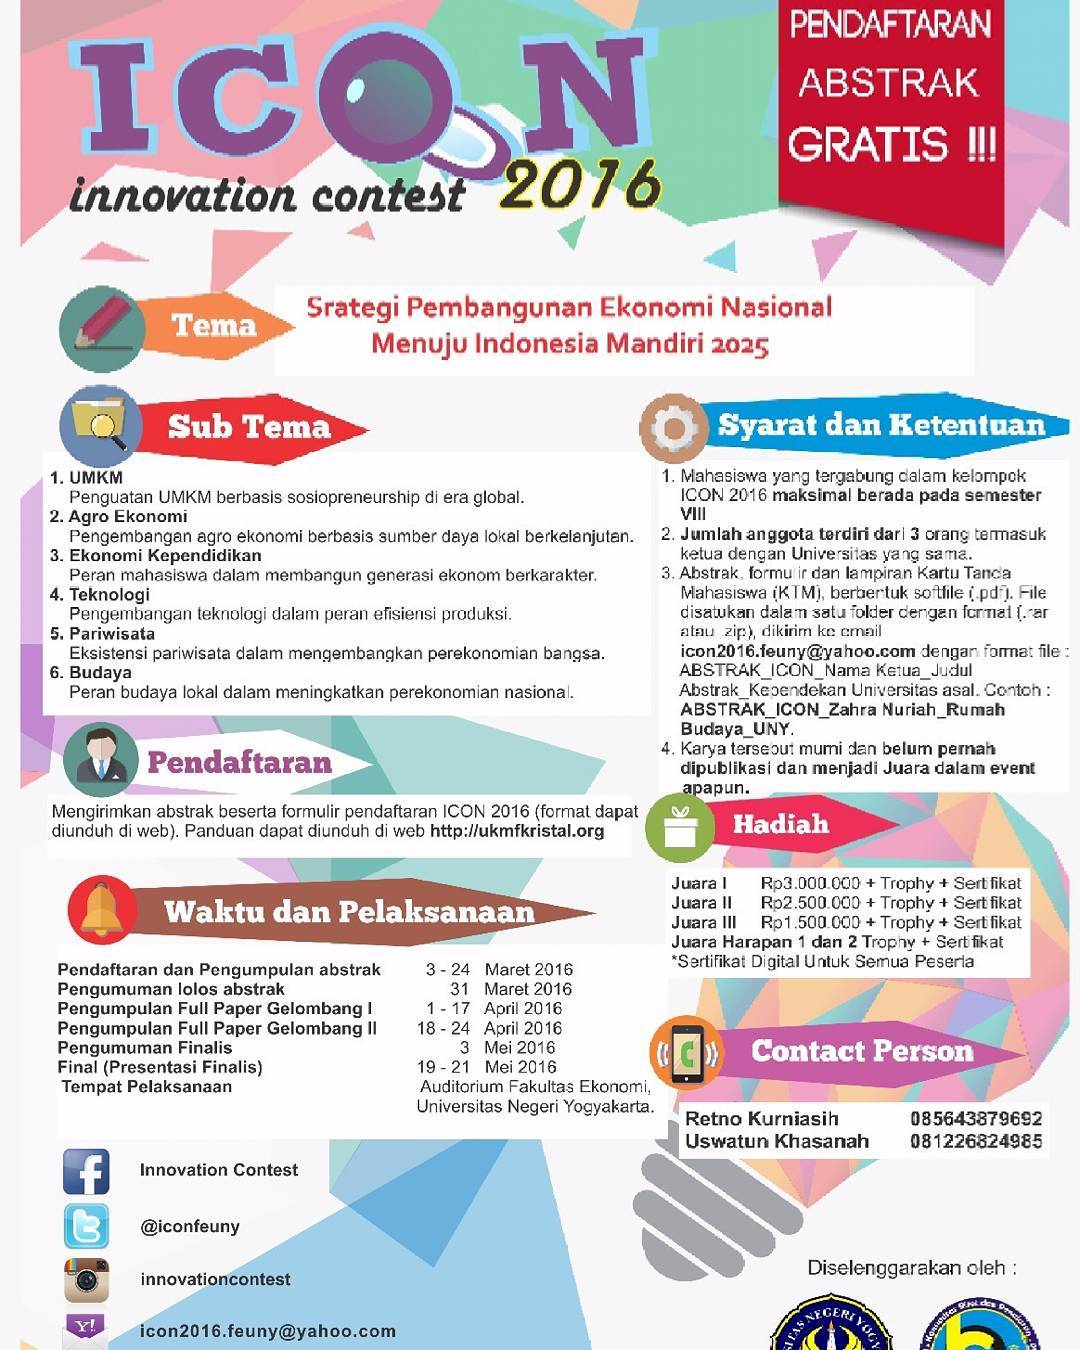 Nasional Innovation Contest ICON 2016 1